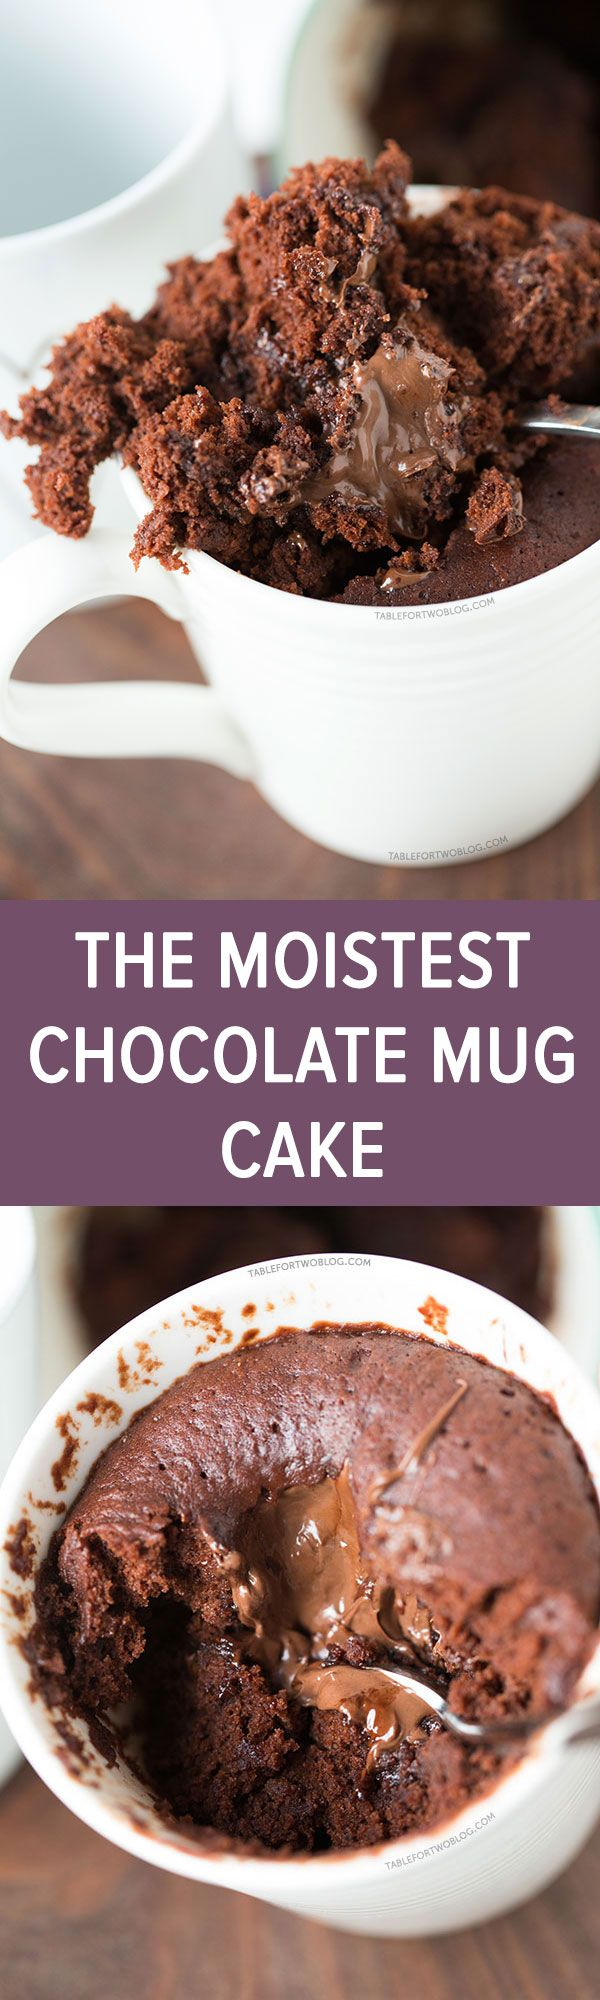 The moistest chocolate mug cake you will ever have! It's not spongy like other mug cakes!